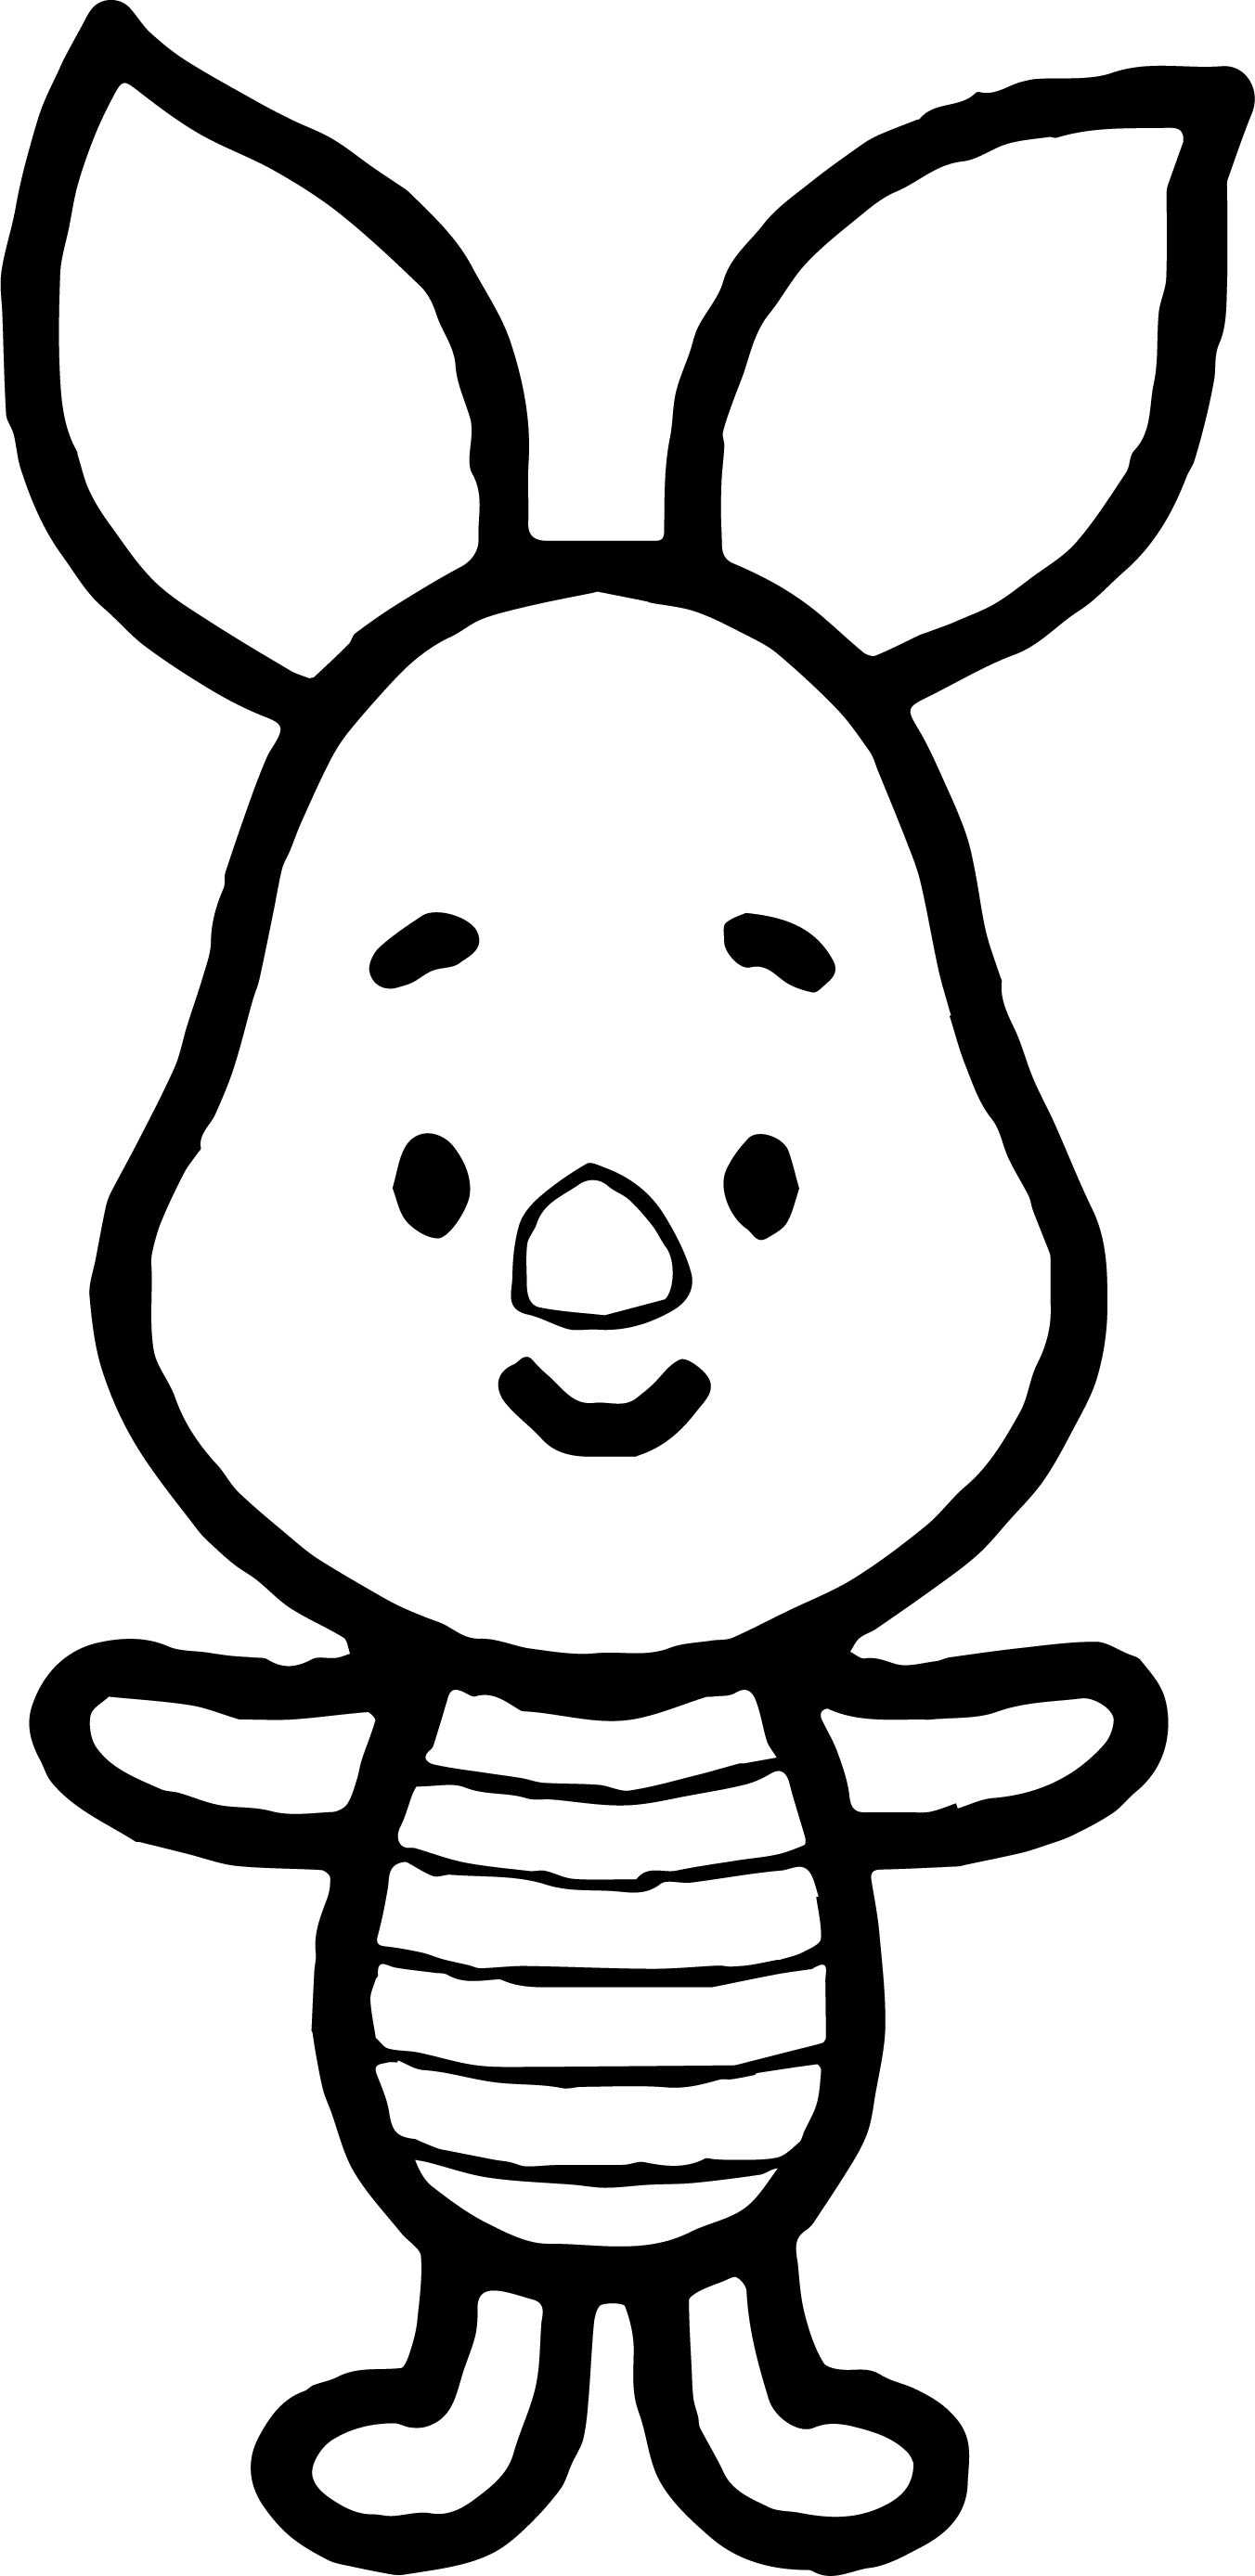 Piglet coloring pages cute coloring pages for Piglet coloring pages